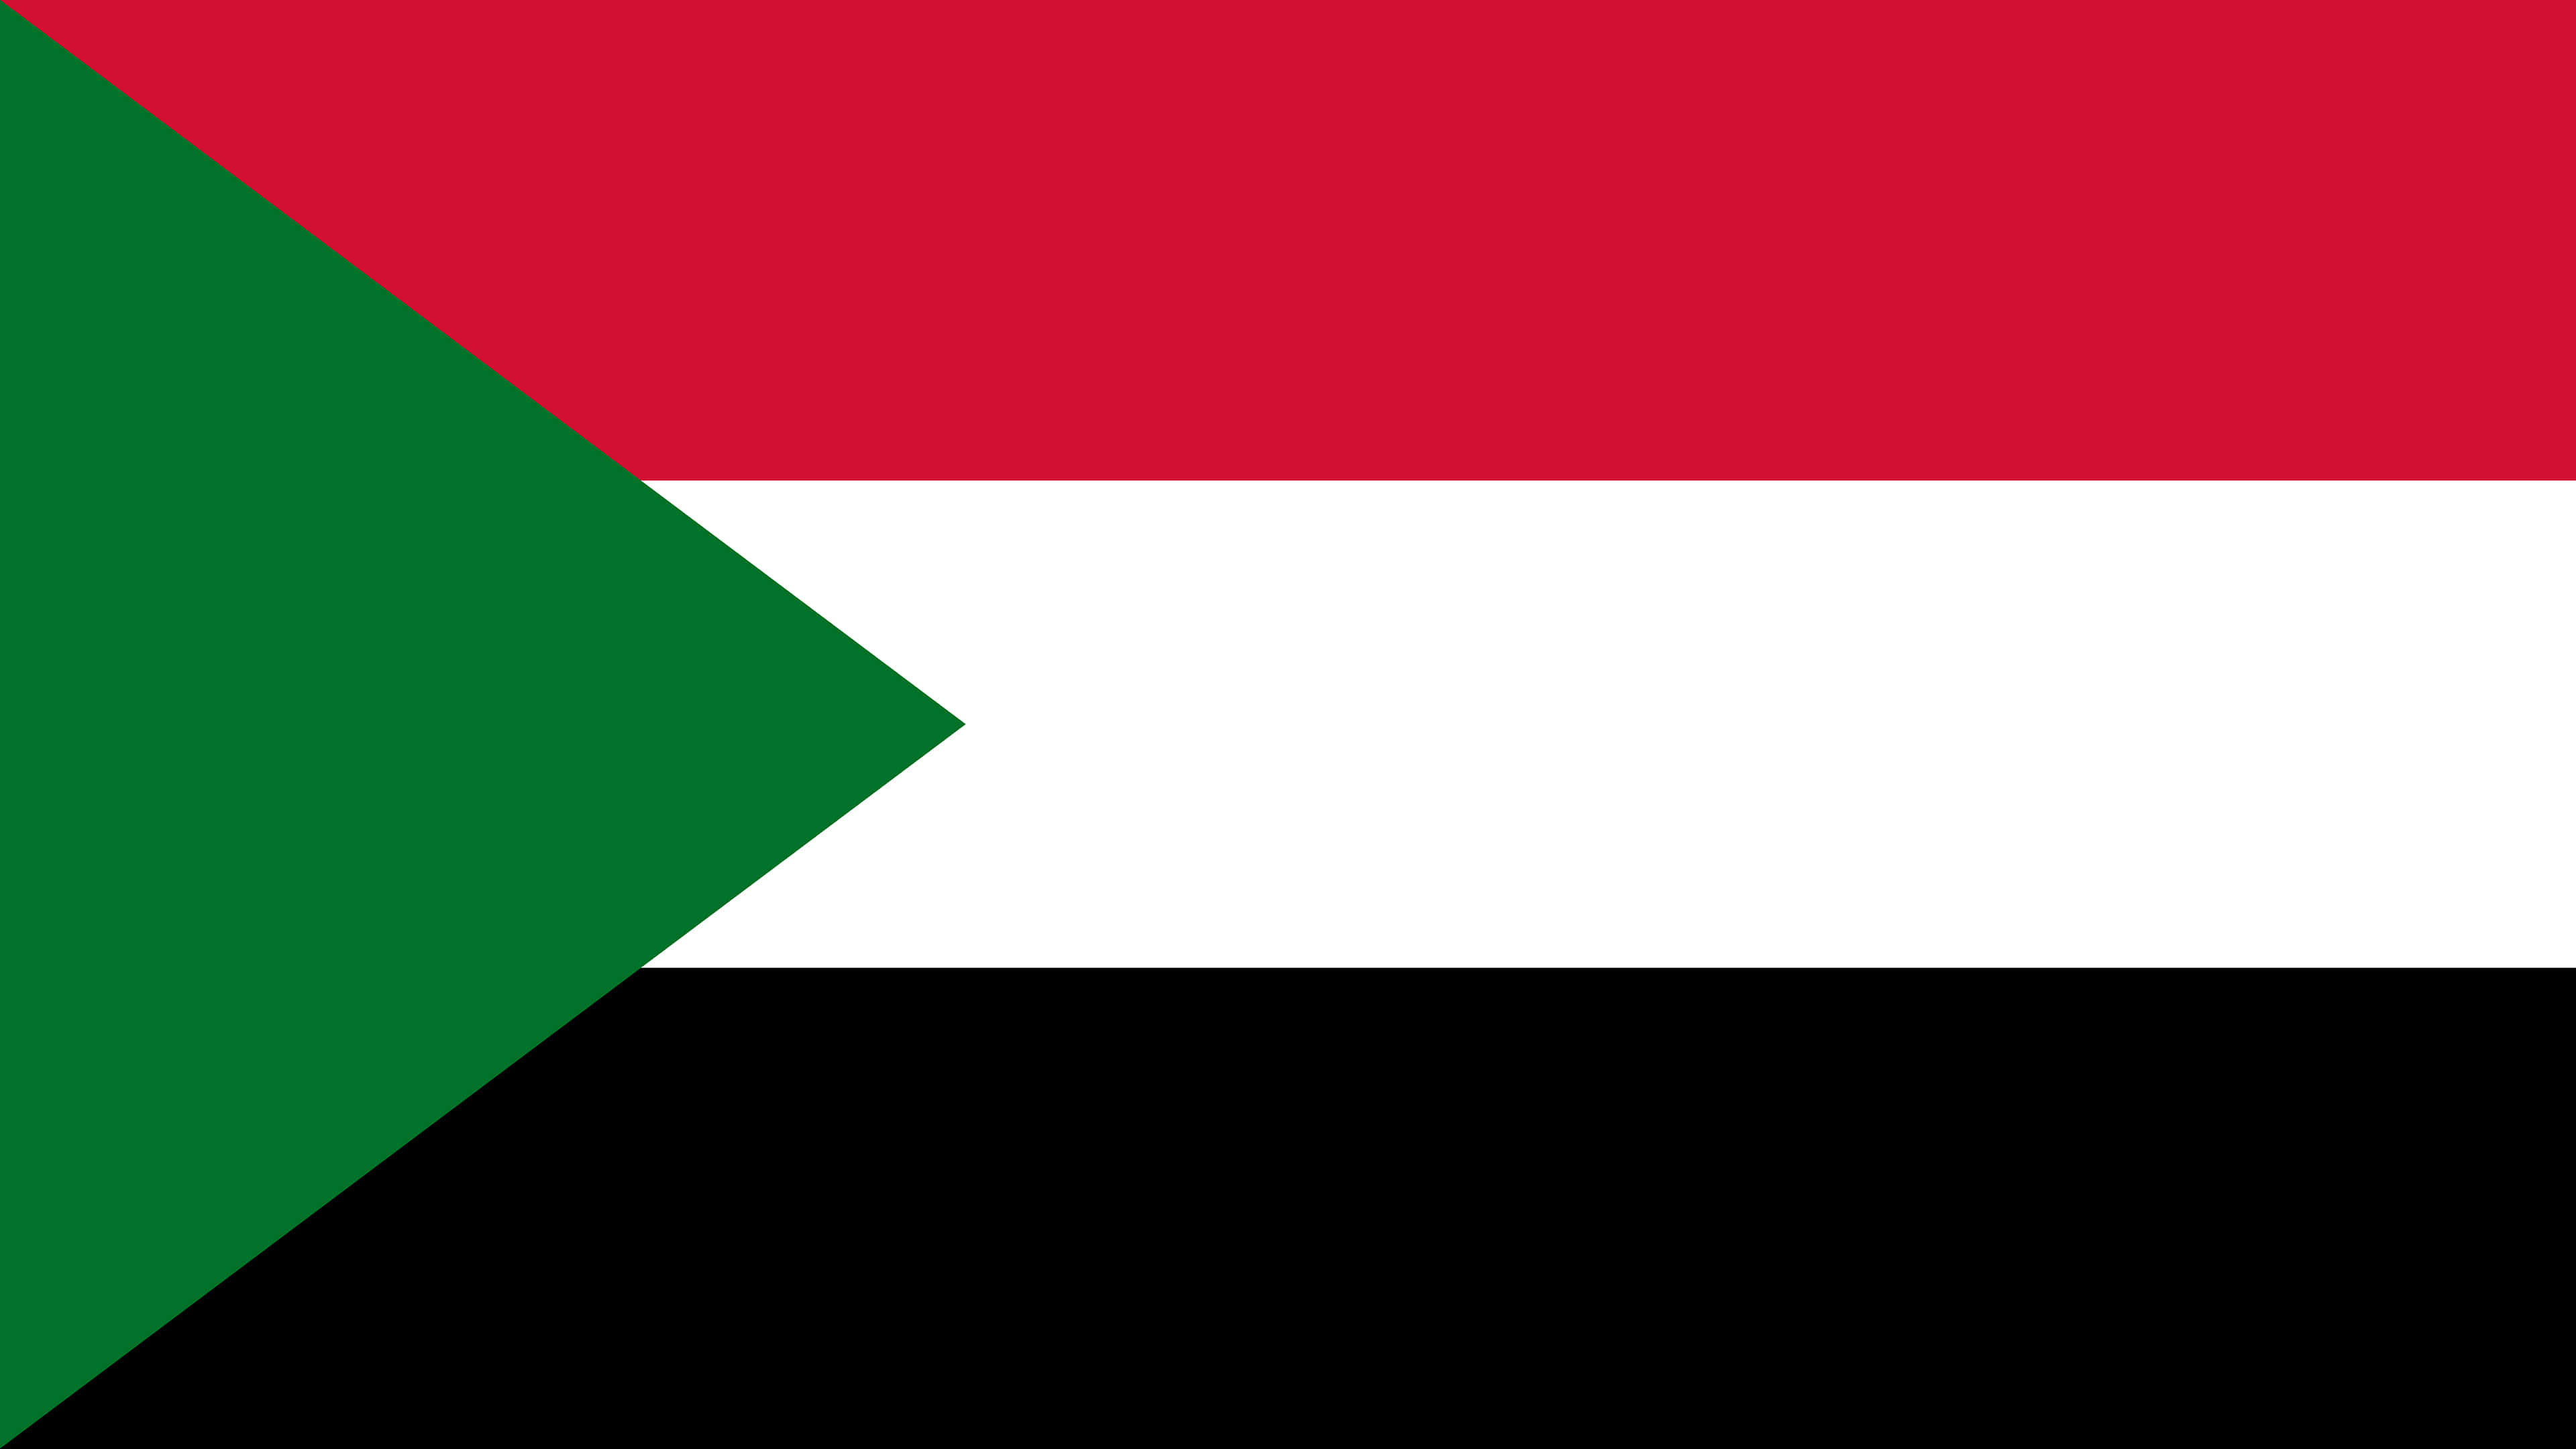 sudan flag uhd 4k wallpaper